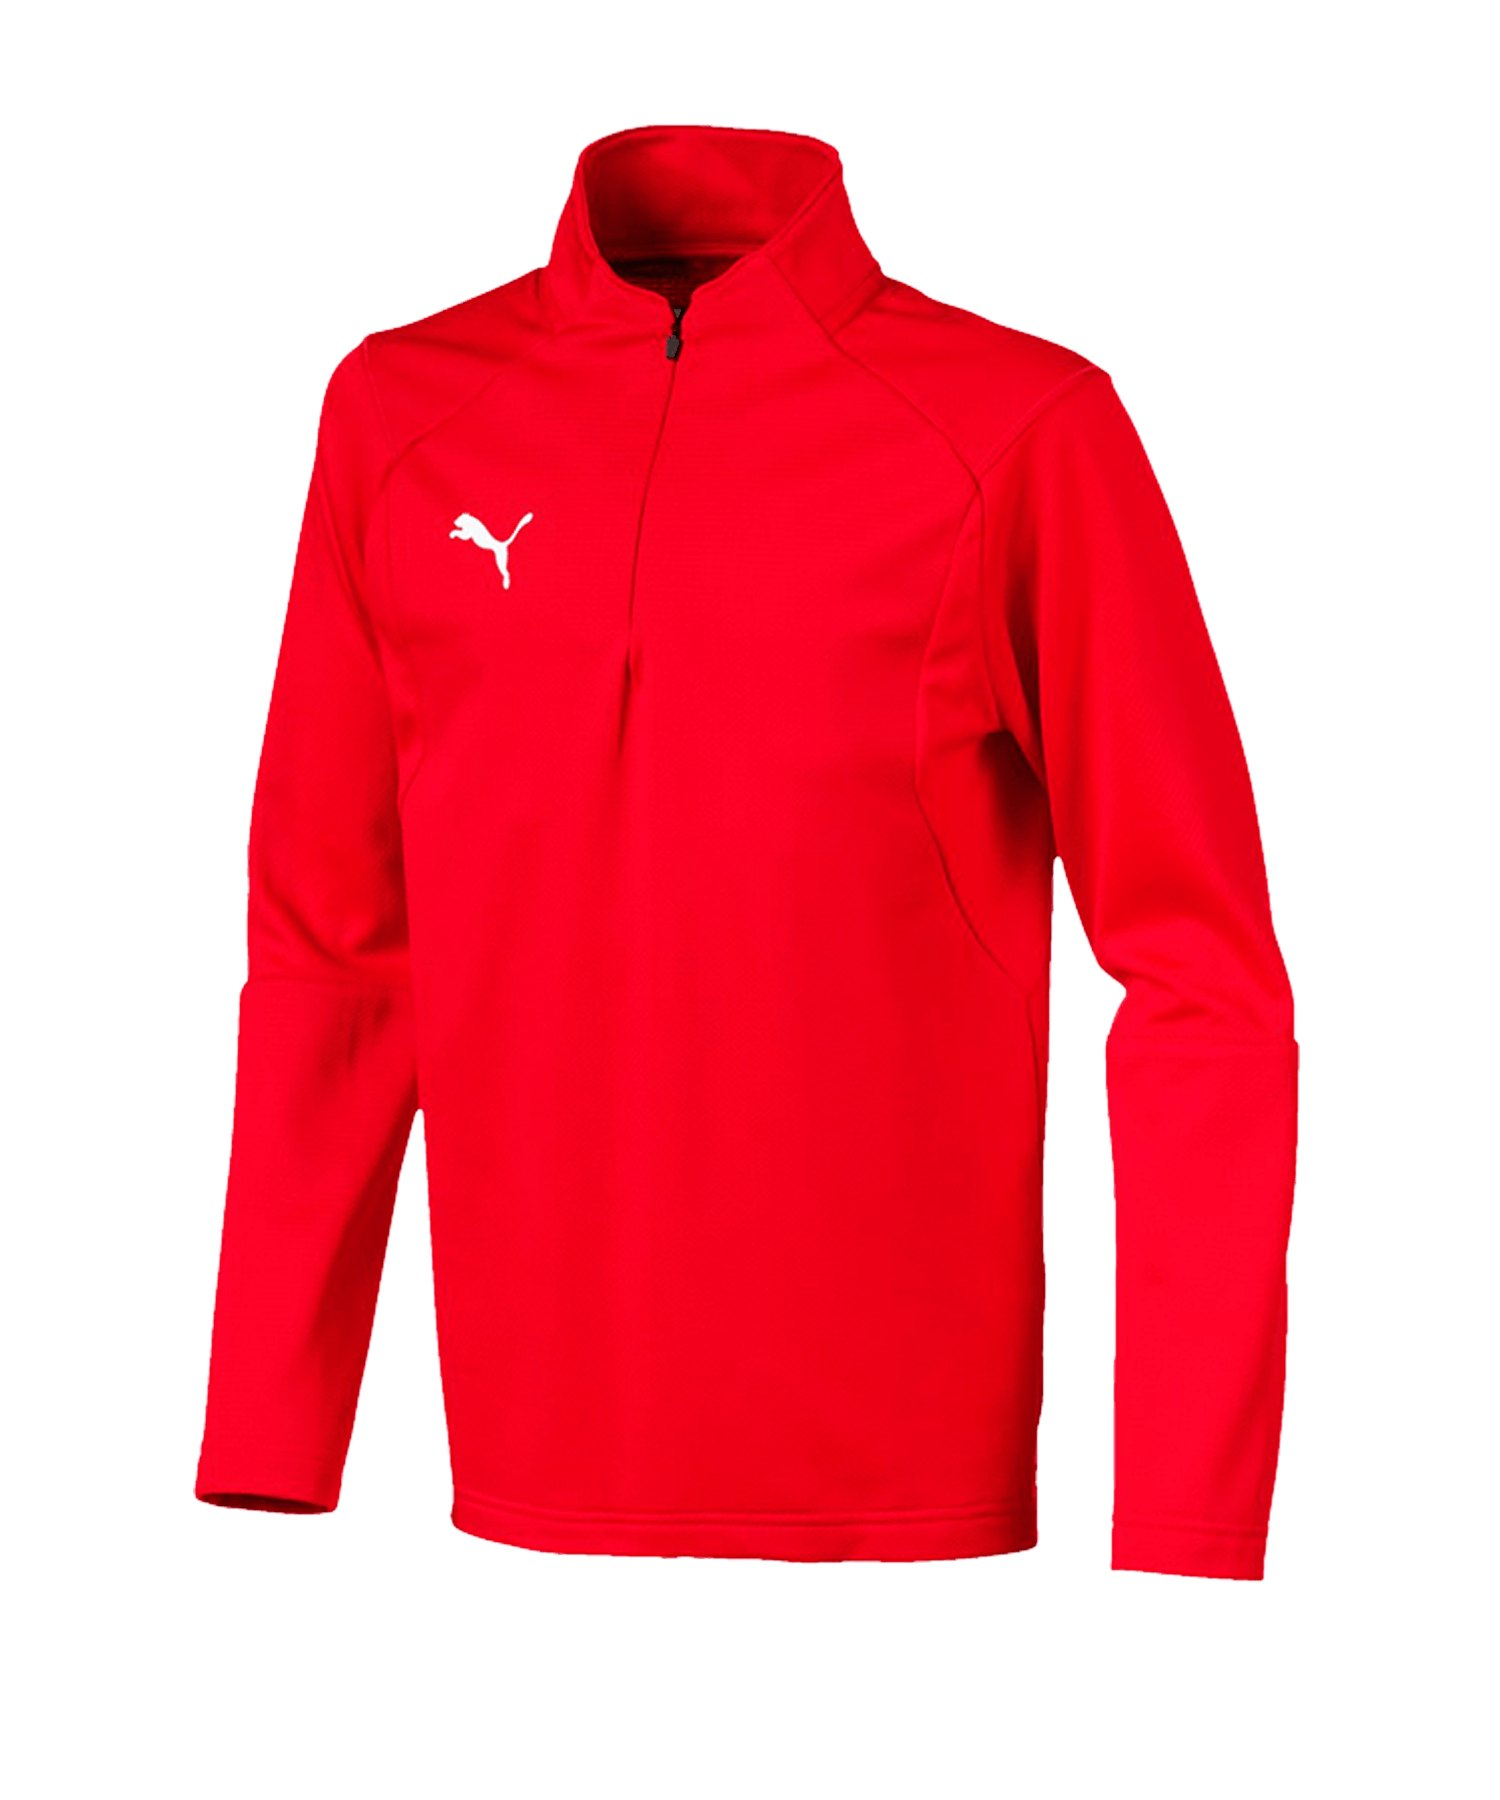 PUMA LIGA Training 1/4 Zip Top Sweatshirt Kids F01 - rot